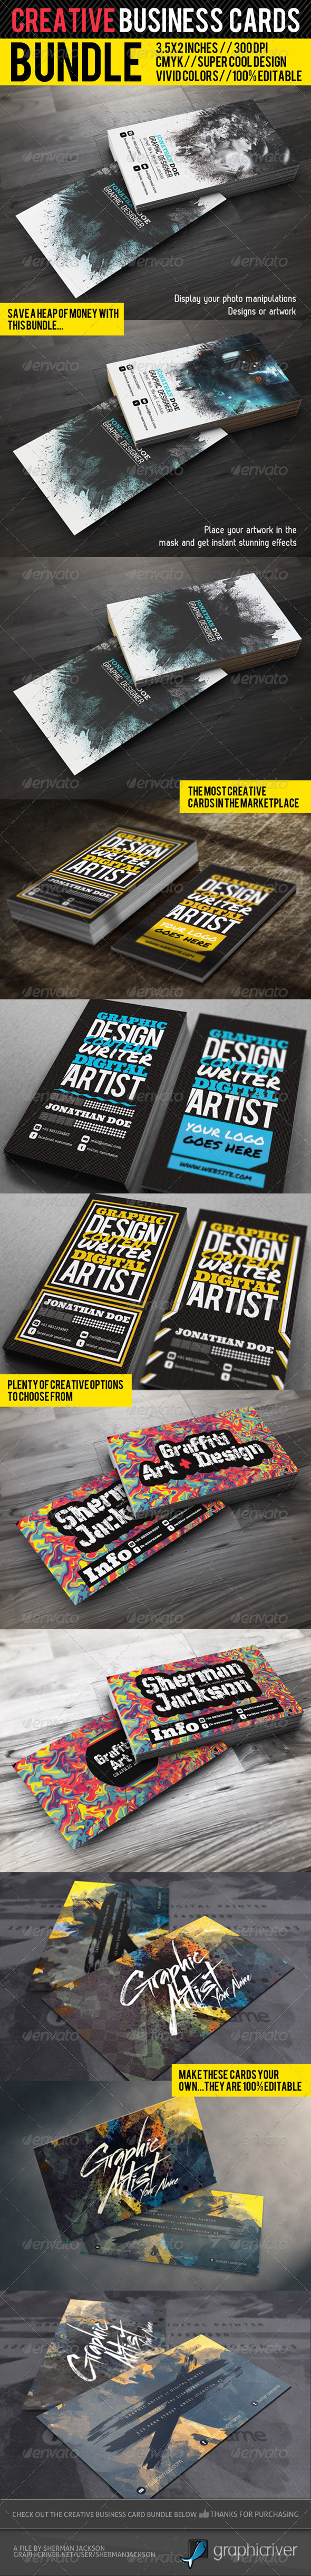 GraphicRiver Creative Business Card Premium Bundle 1962755